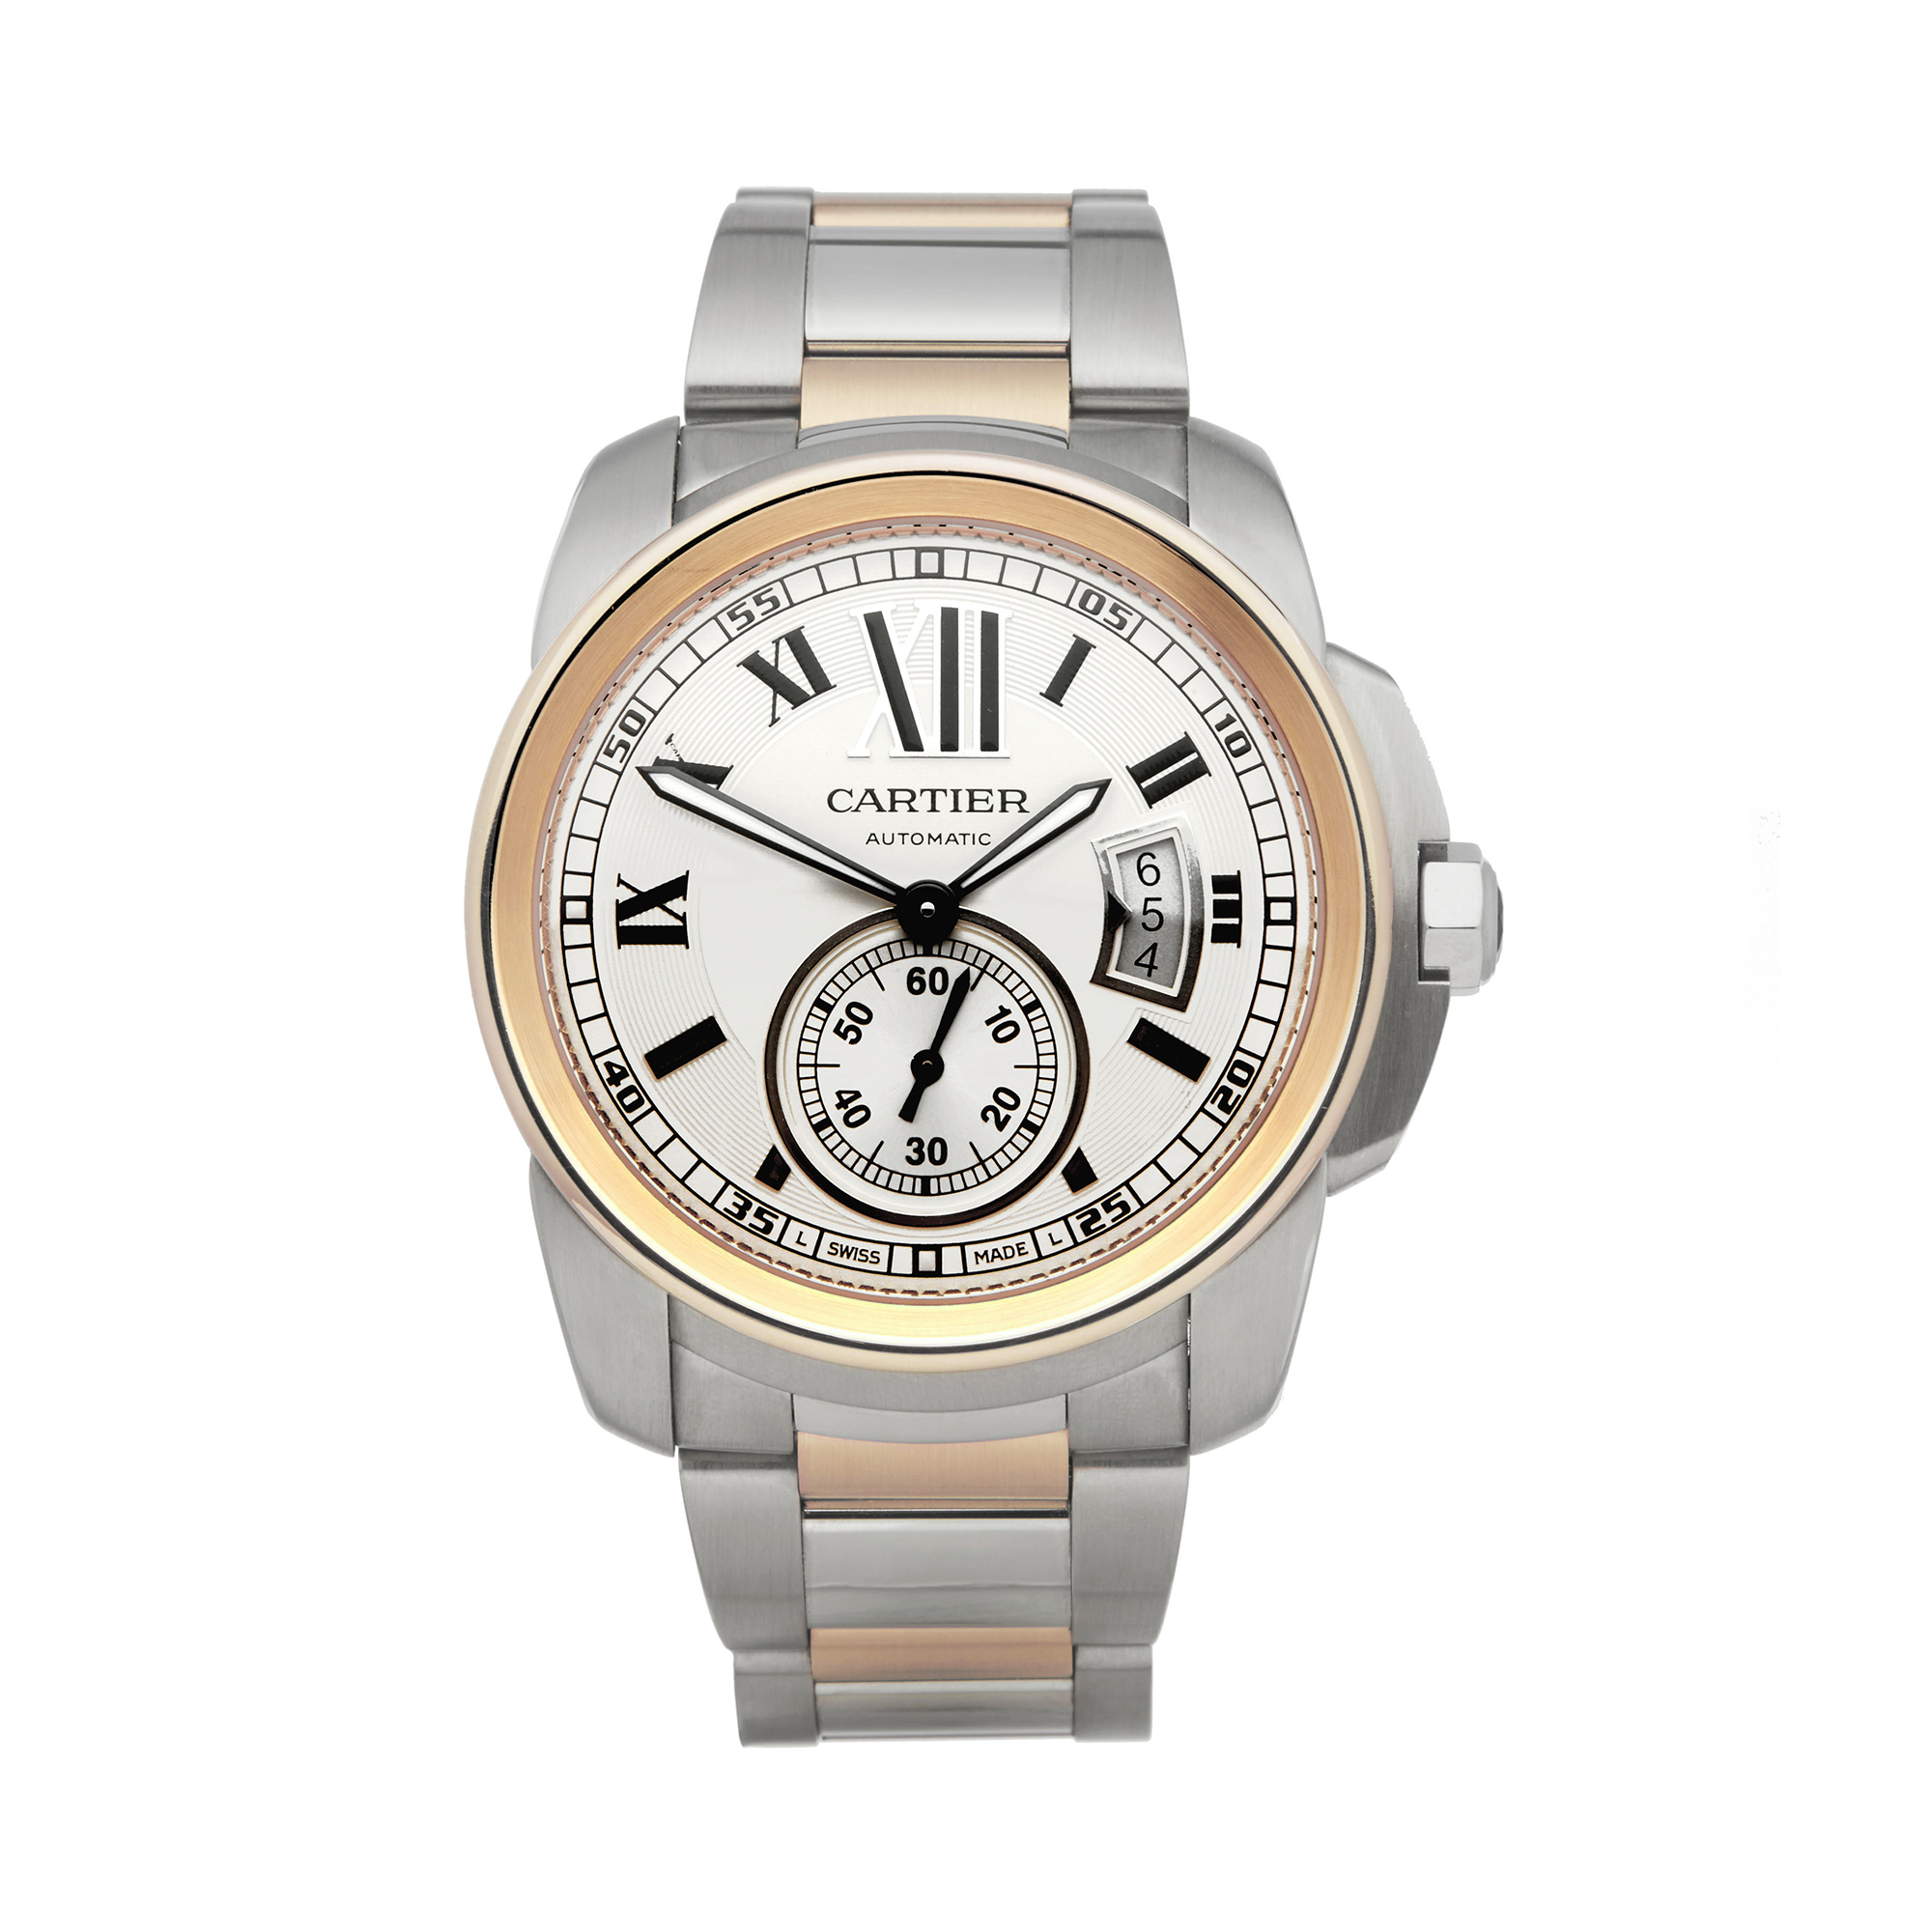 Cartier Calibre W7100036 or 3389 Men Stainless Steel & Rose Gold Watch - Image 8 of 8